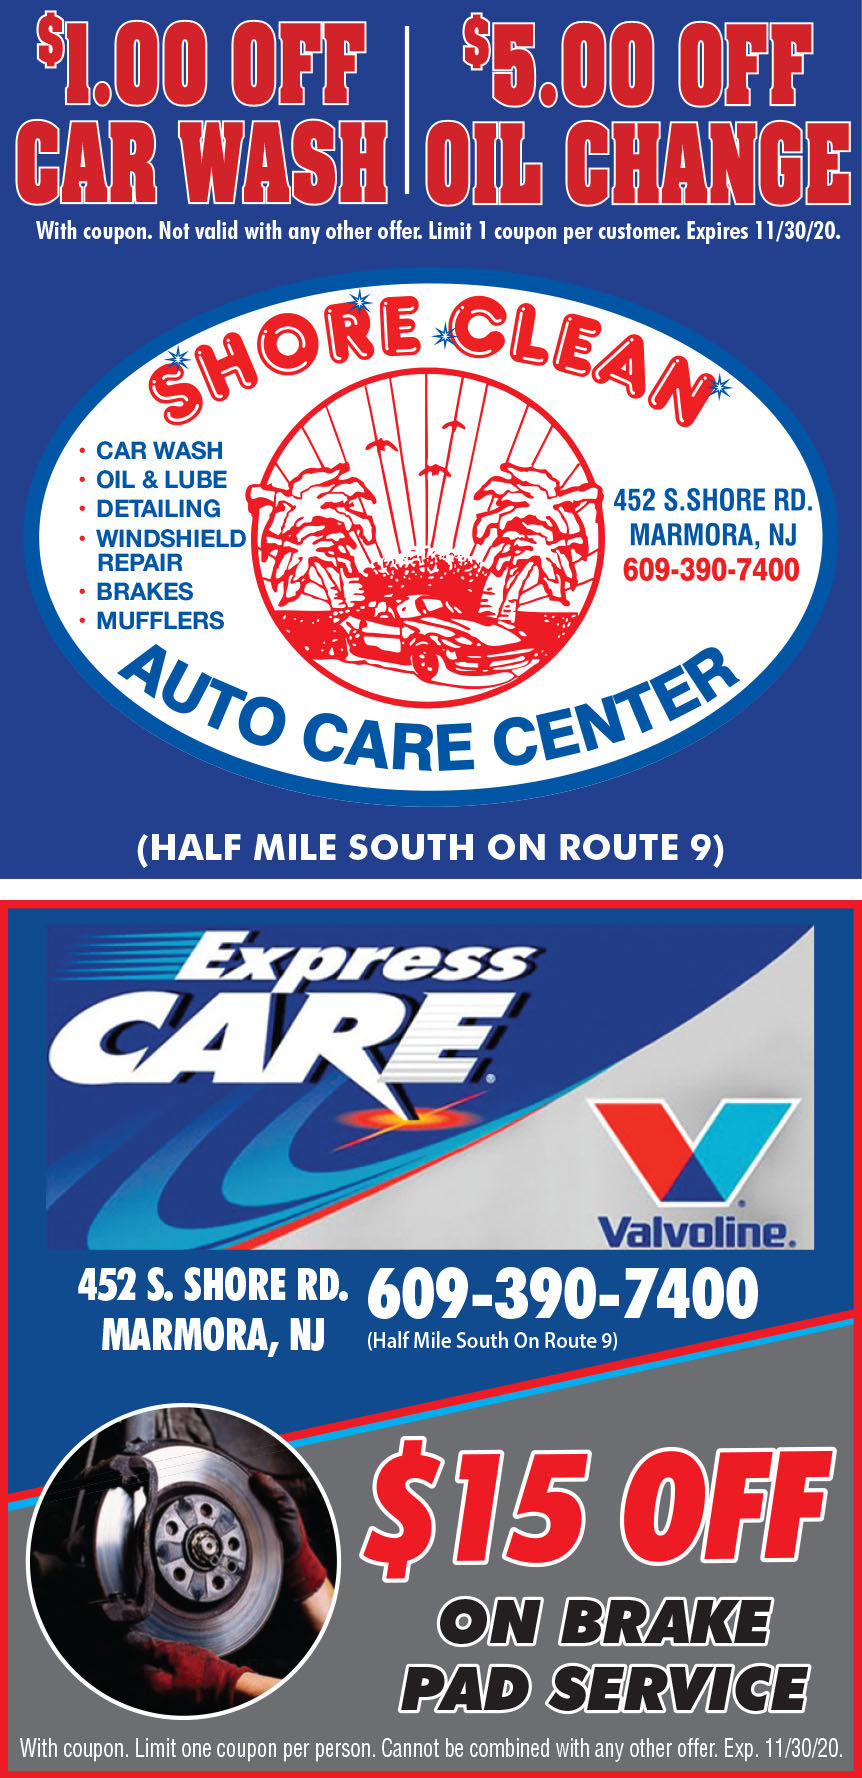 SHORE CLEAN EXPRESS CARE